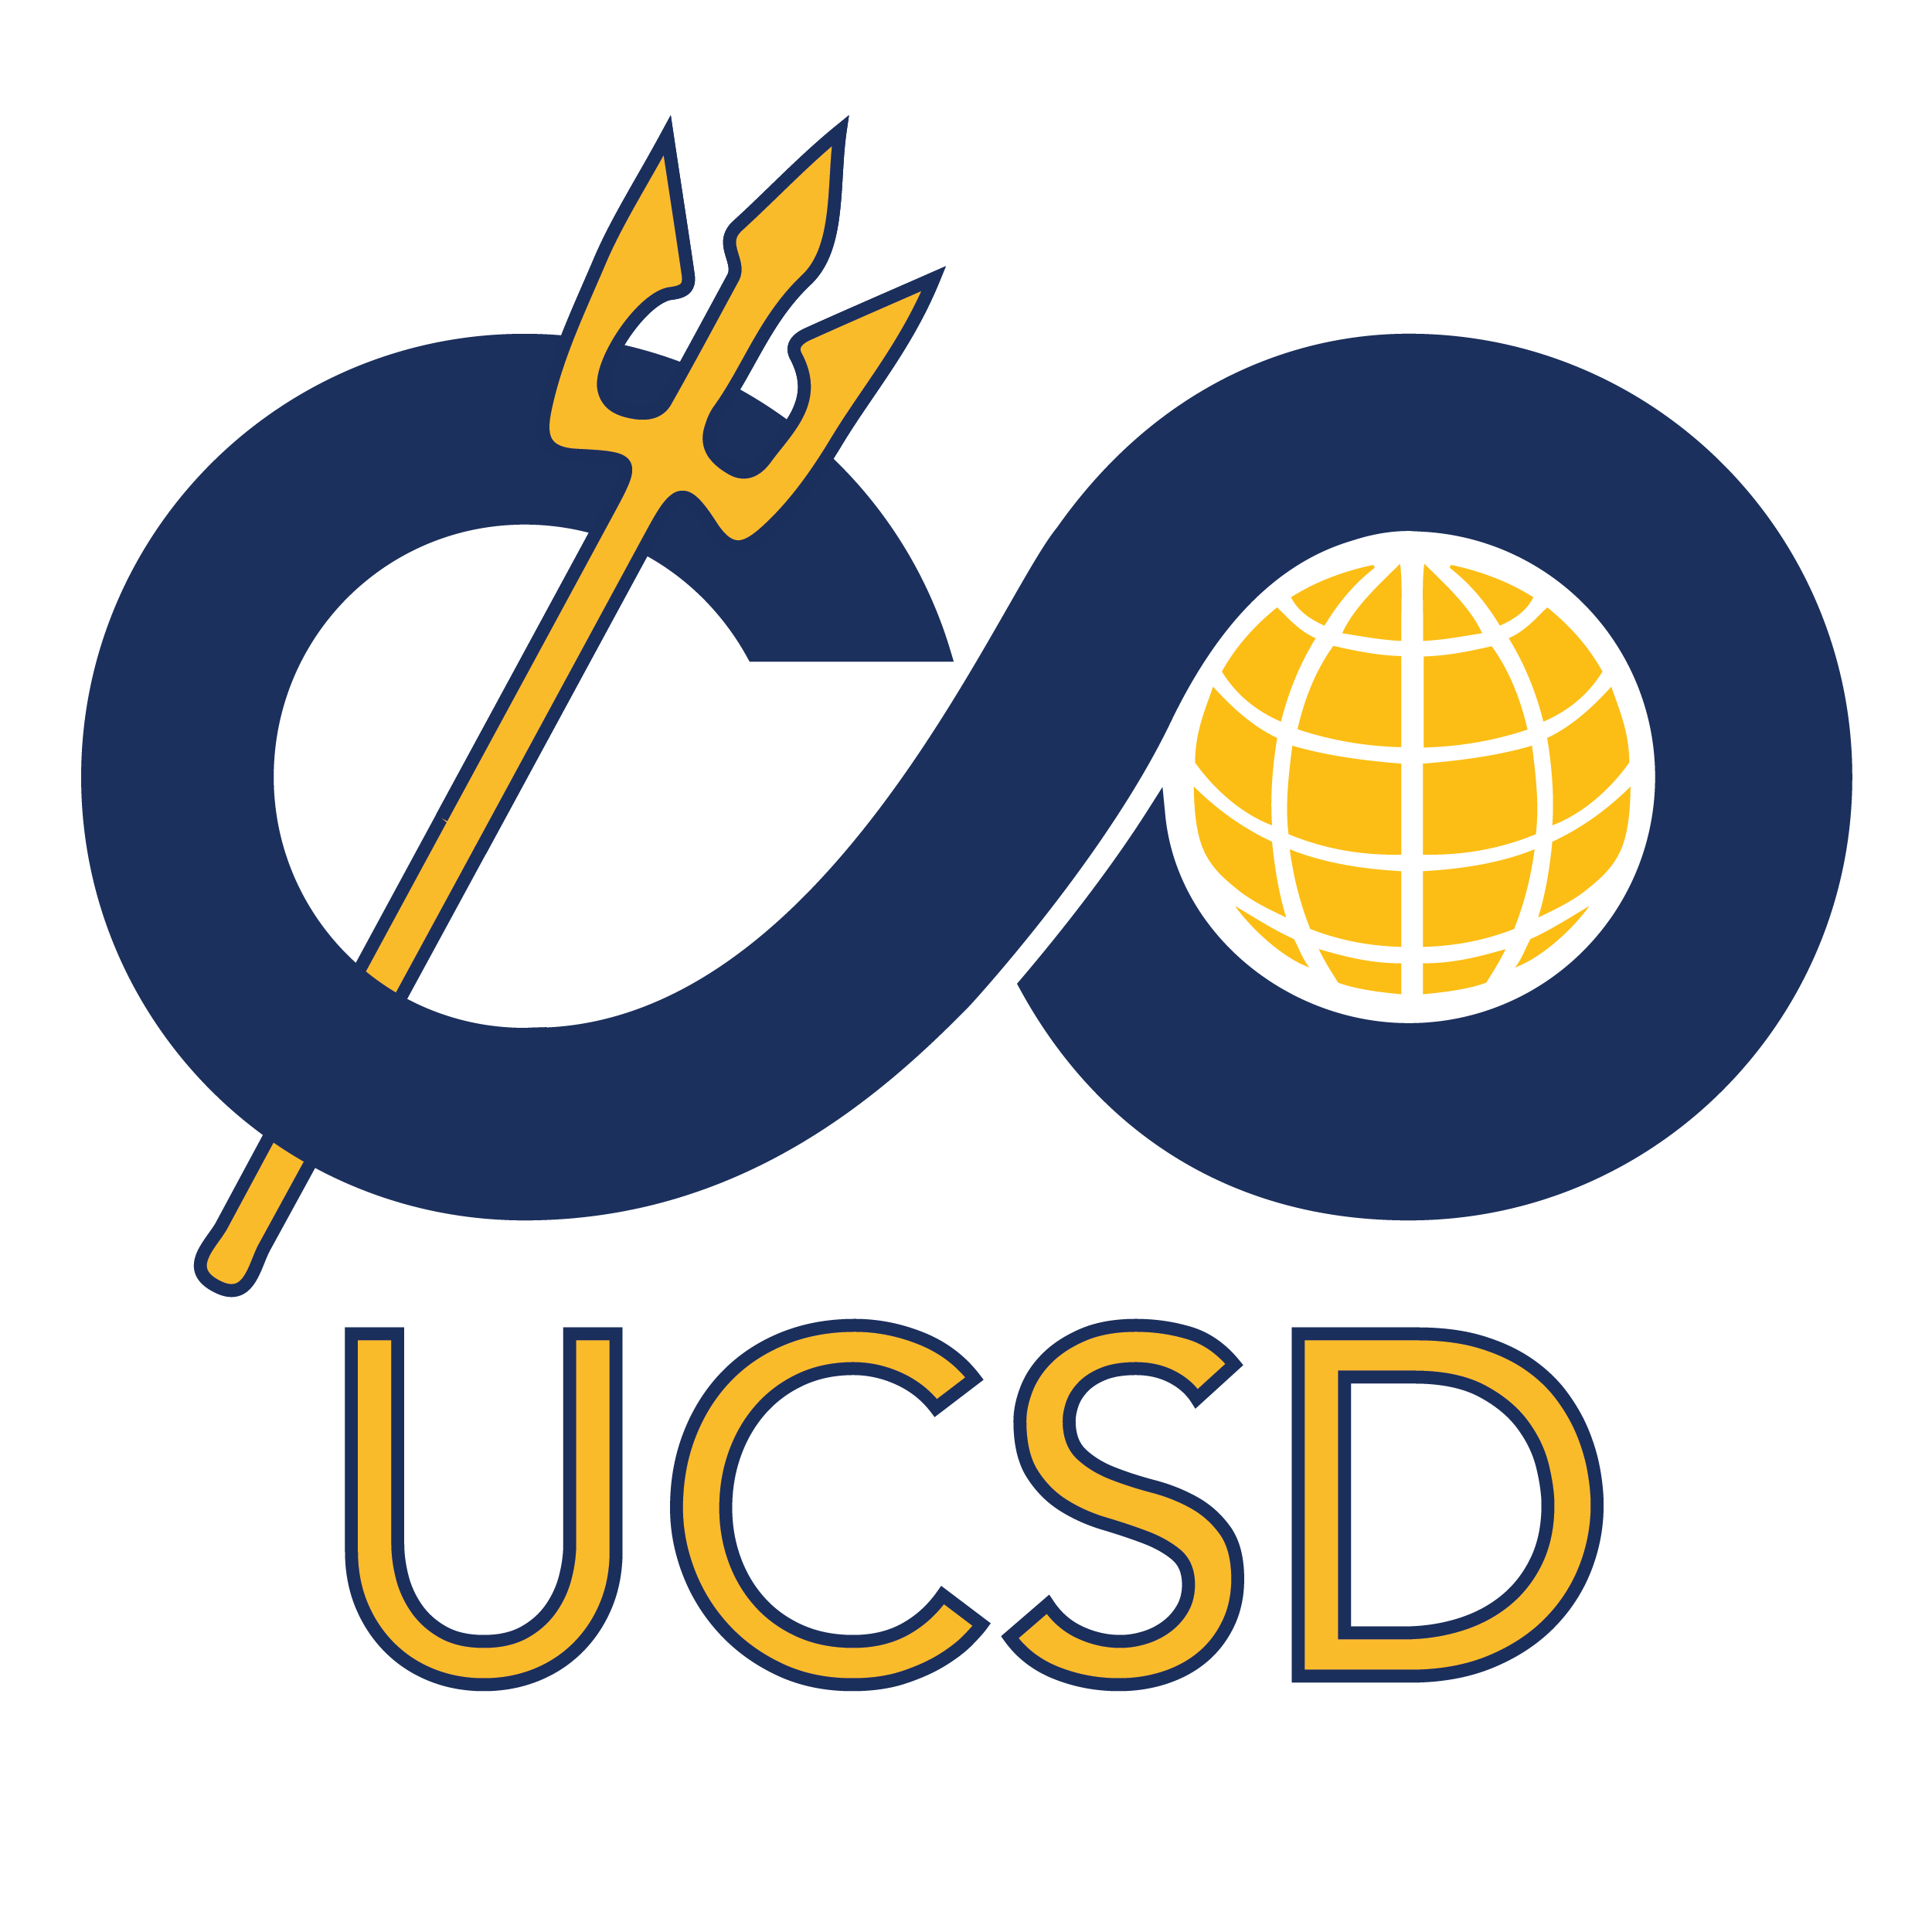 CO campus logos-02.png